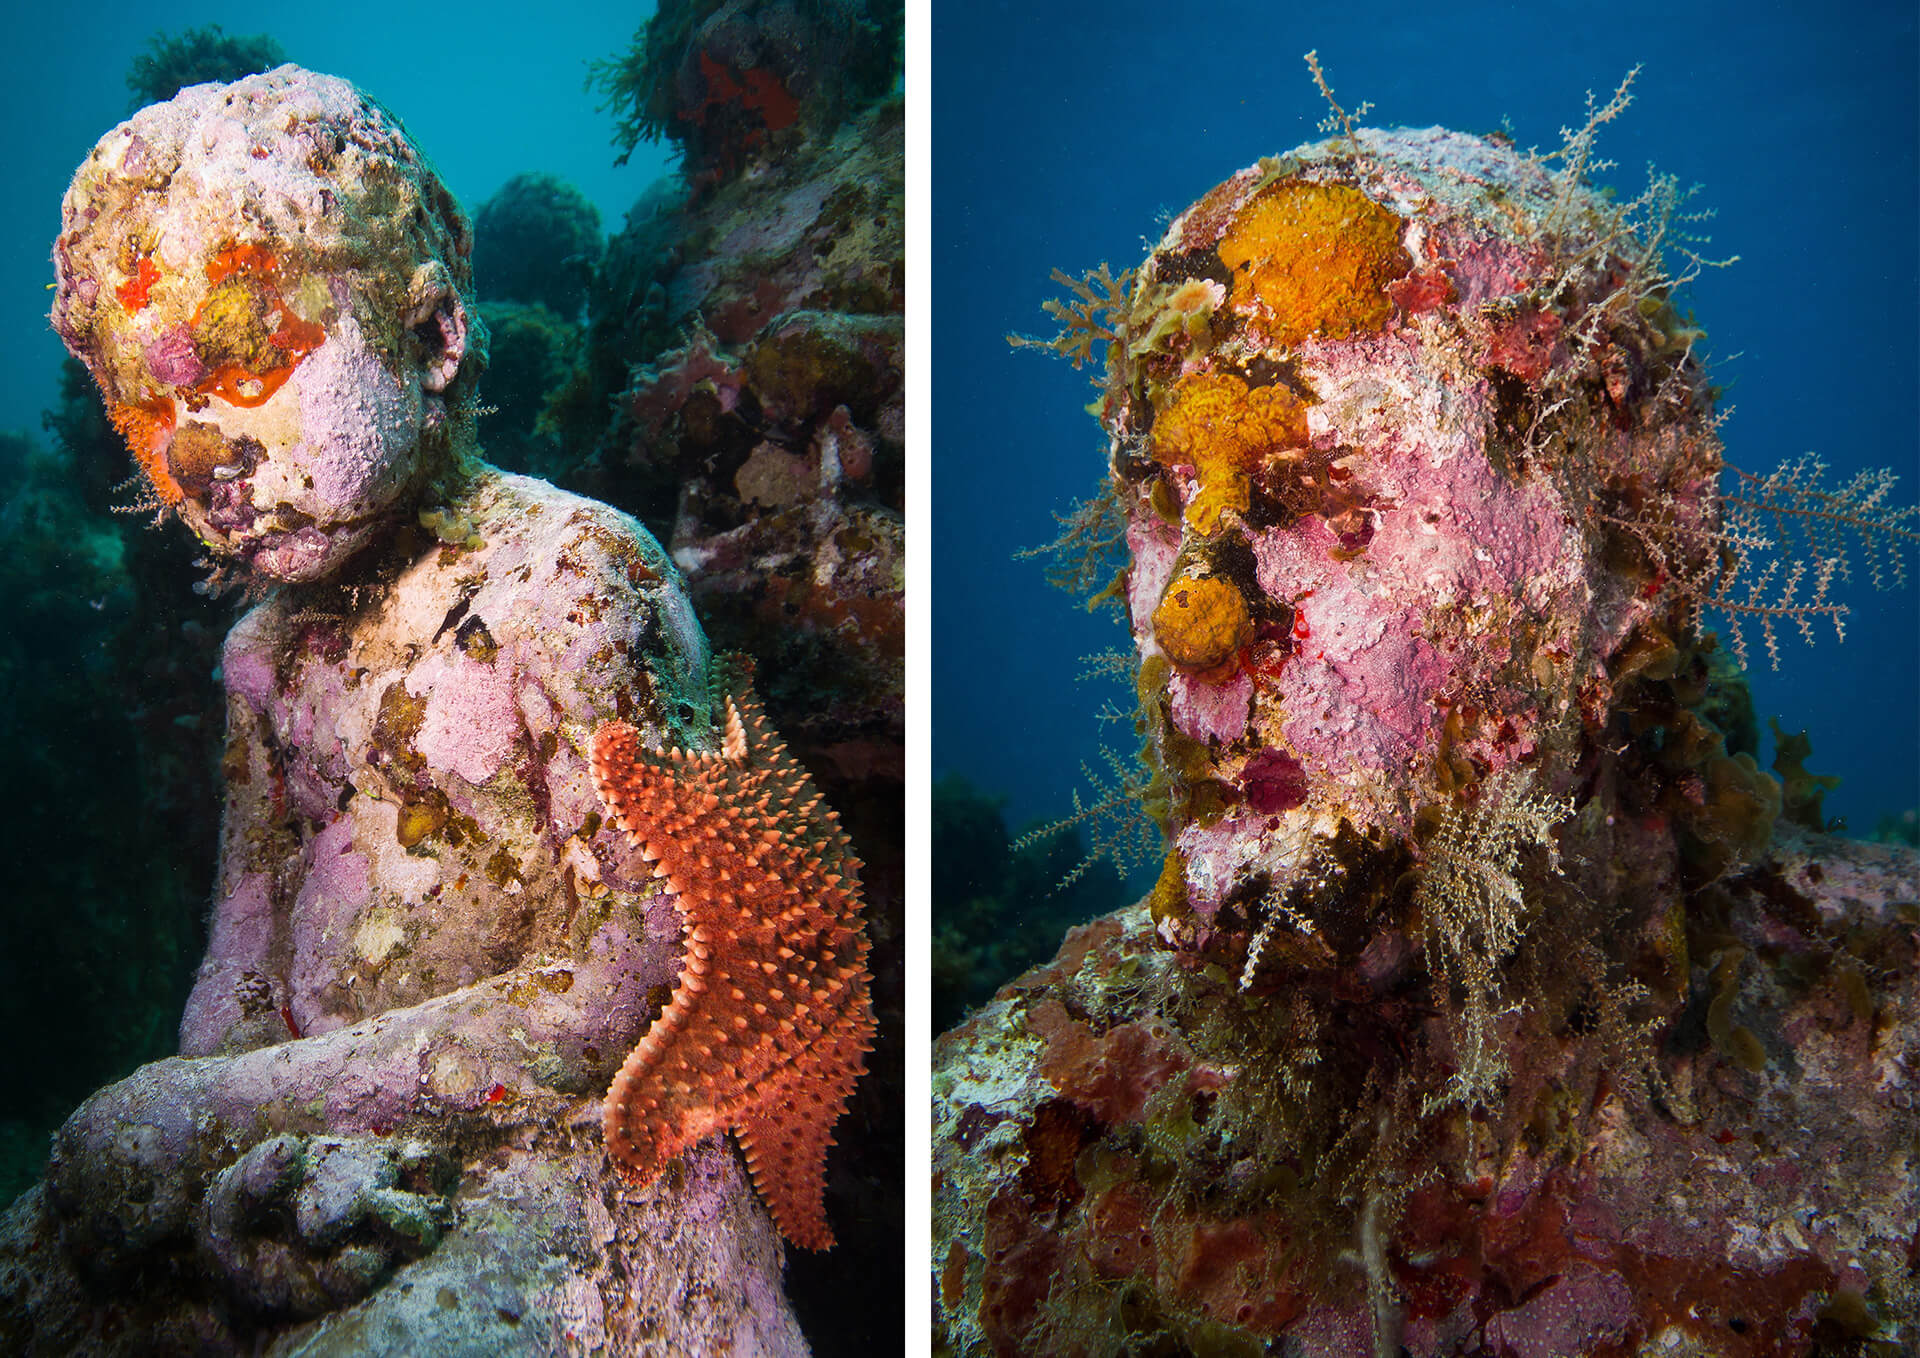 Parts of Silent Evolution by Jason deCaires Taylor, colonised by marine life | STIRworld